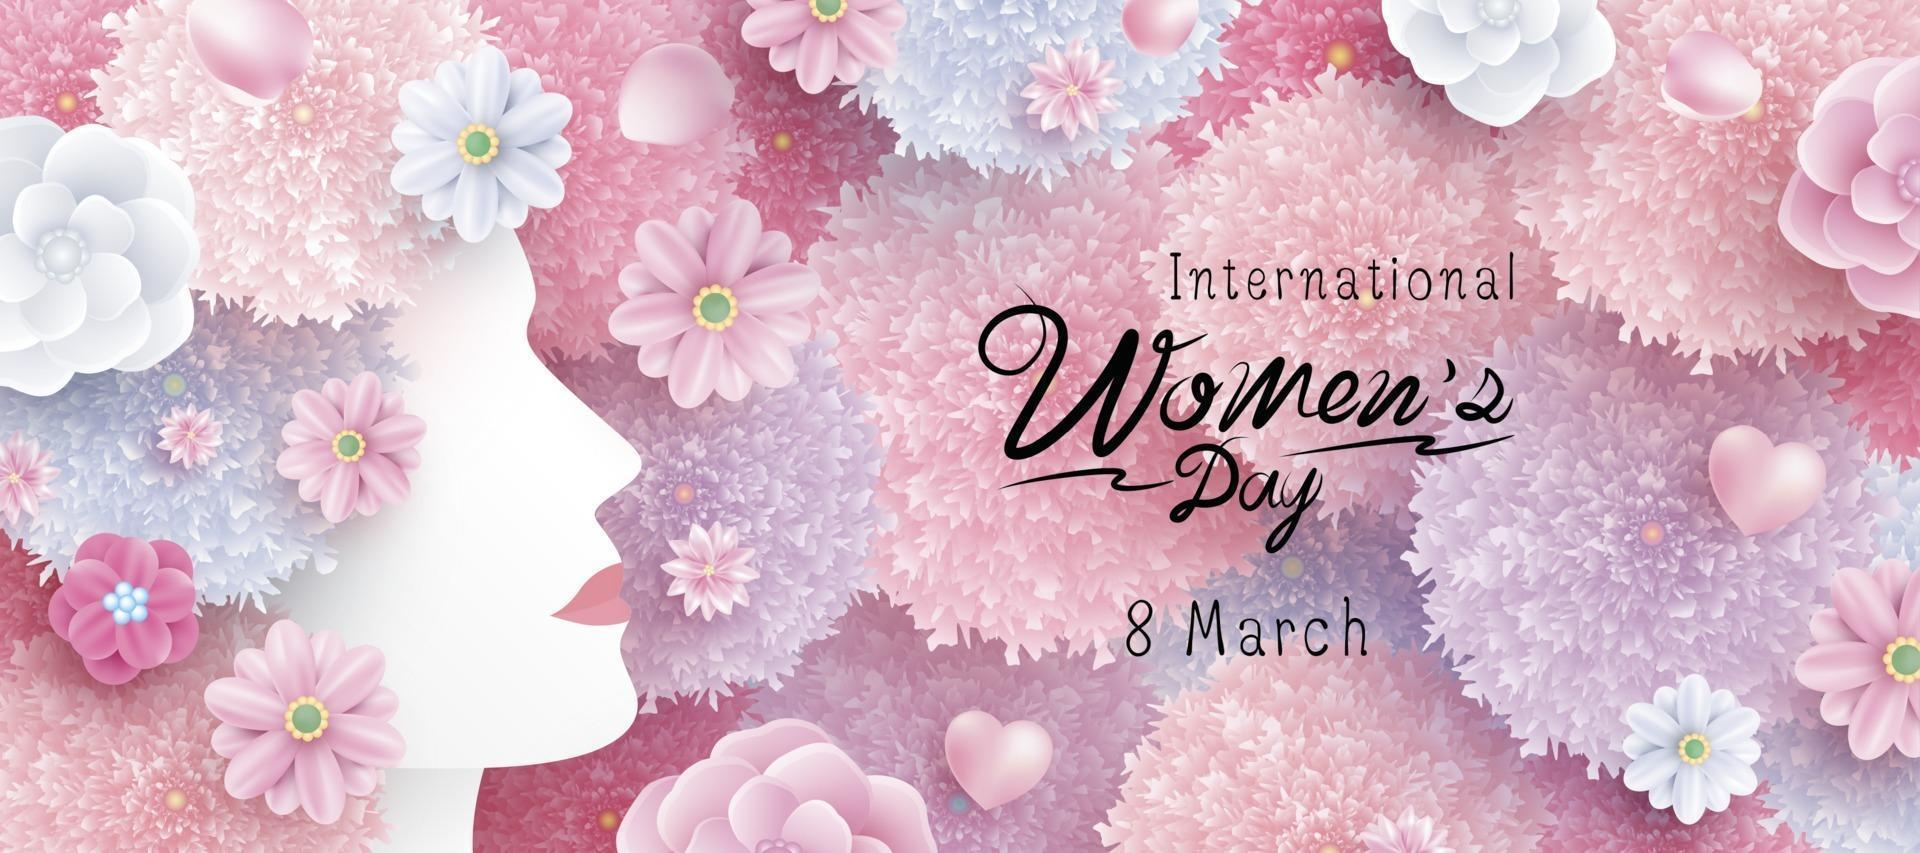 8 March International Women's day concept design of woman and flowers vector illustration